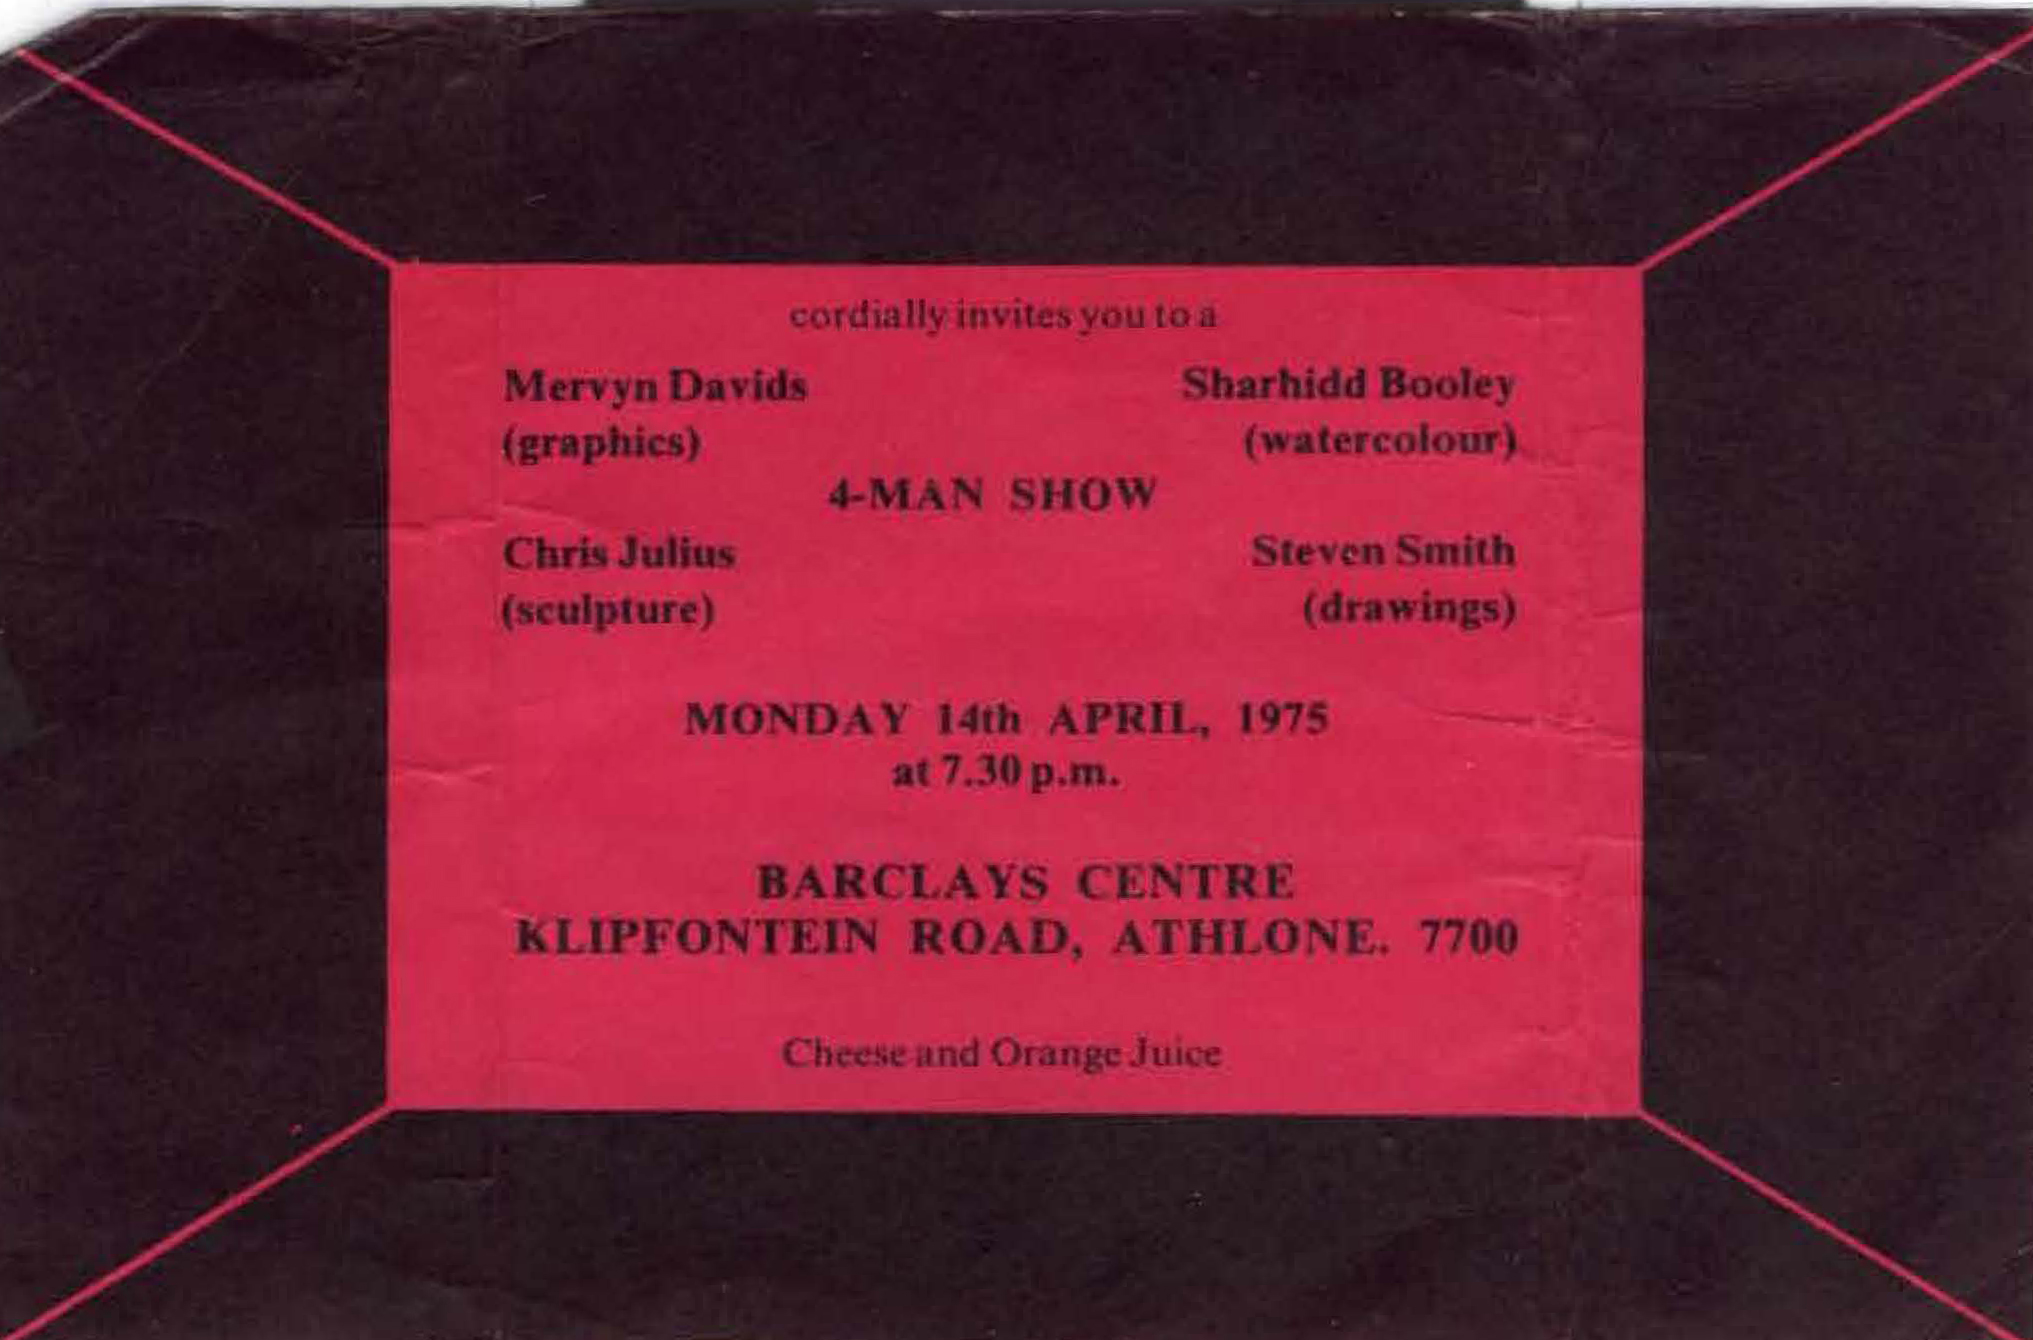 Vakalisa - Barclays Centre exhibition invitation (courtesy Mervyn Davids)